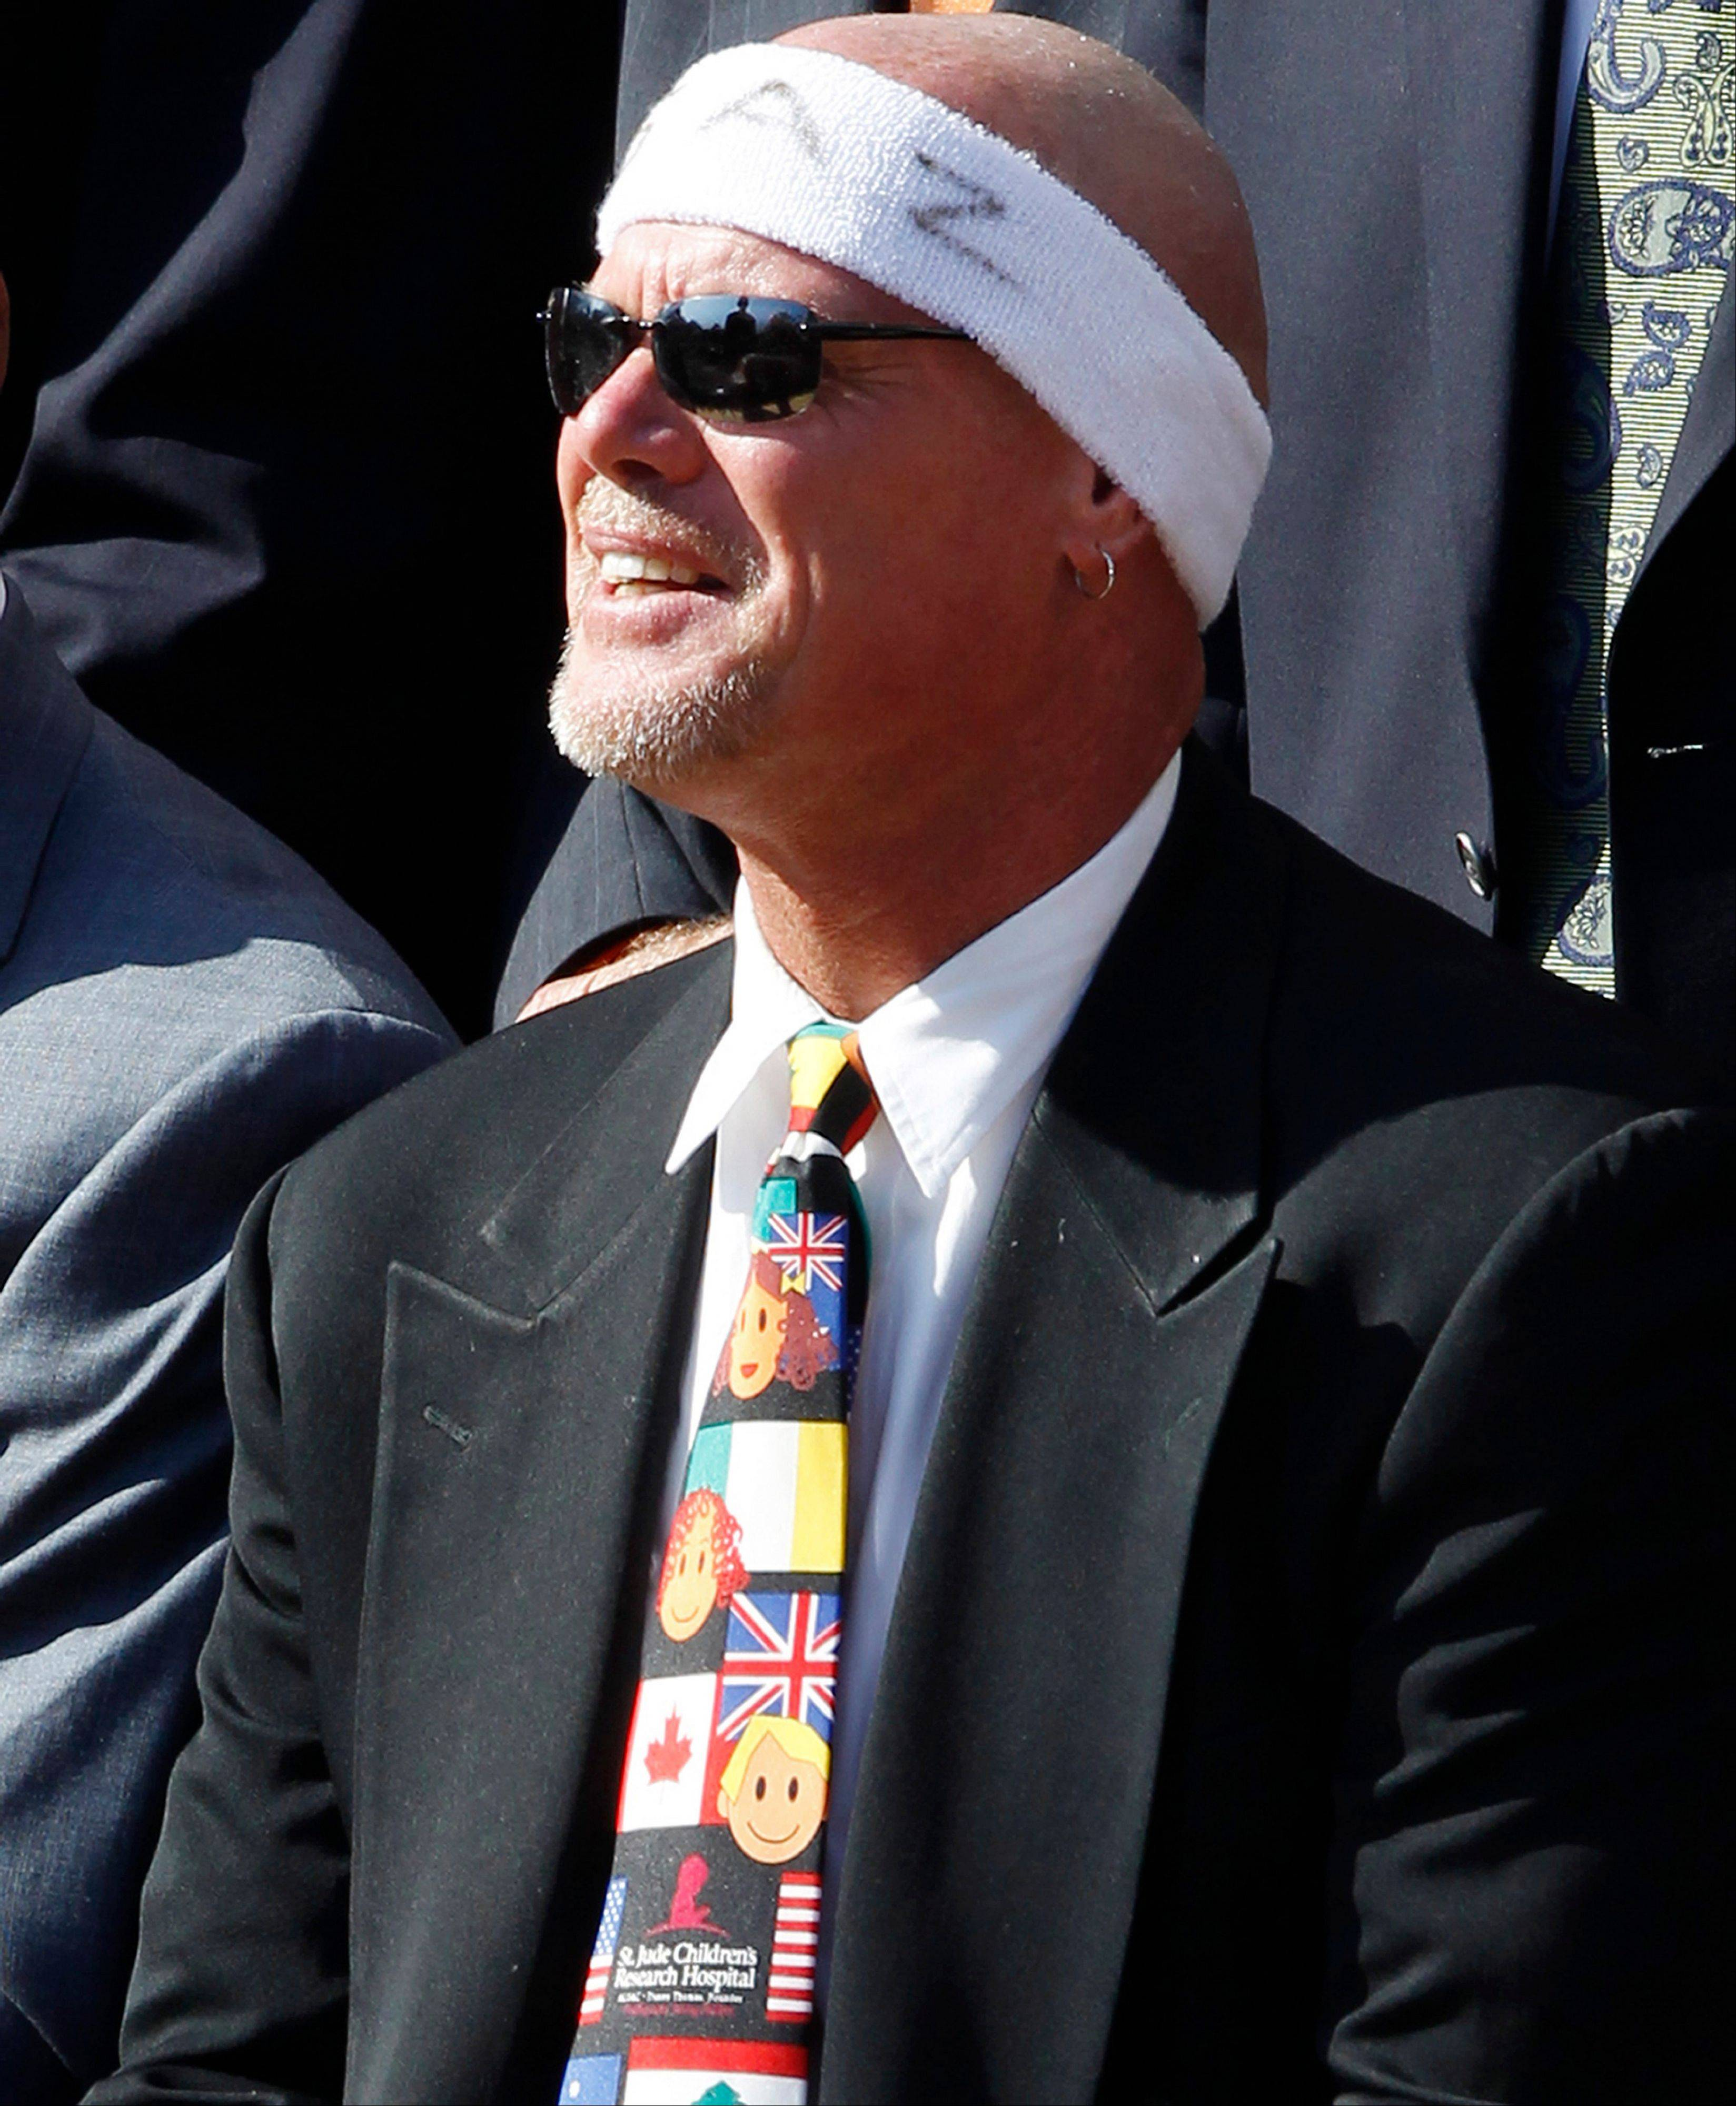 Former quarterback Jim McMahon listens as President Barack Obama honors the 1985 Super Bowl XX Champions Chicago Bears football team during a ceremony on the South Lawn of the White House in Washington, Friday, Oct. 7, 2011.